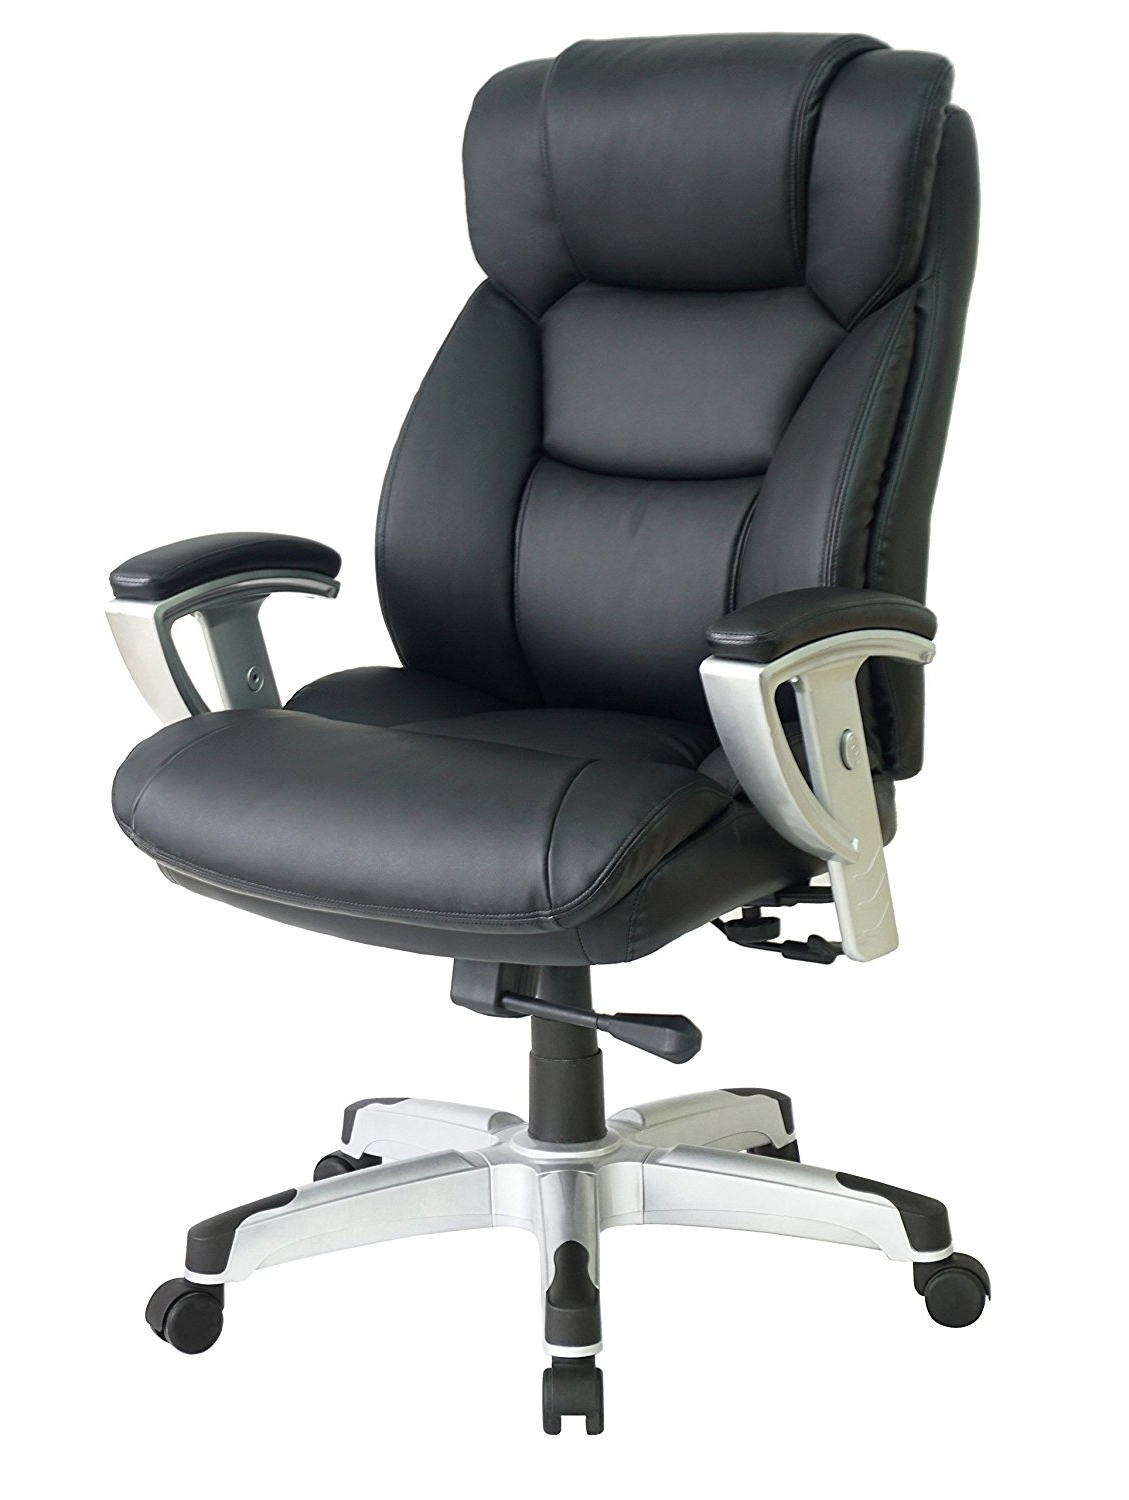 10 Big & Tall Office Chairs For Extra Large Comfort Regarding 2019 Xl Executive Office Chairs (Gallery 5 of 20)